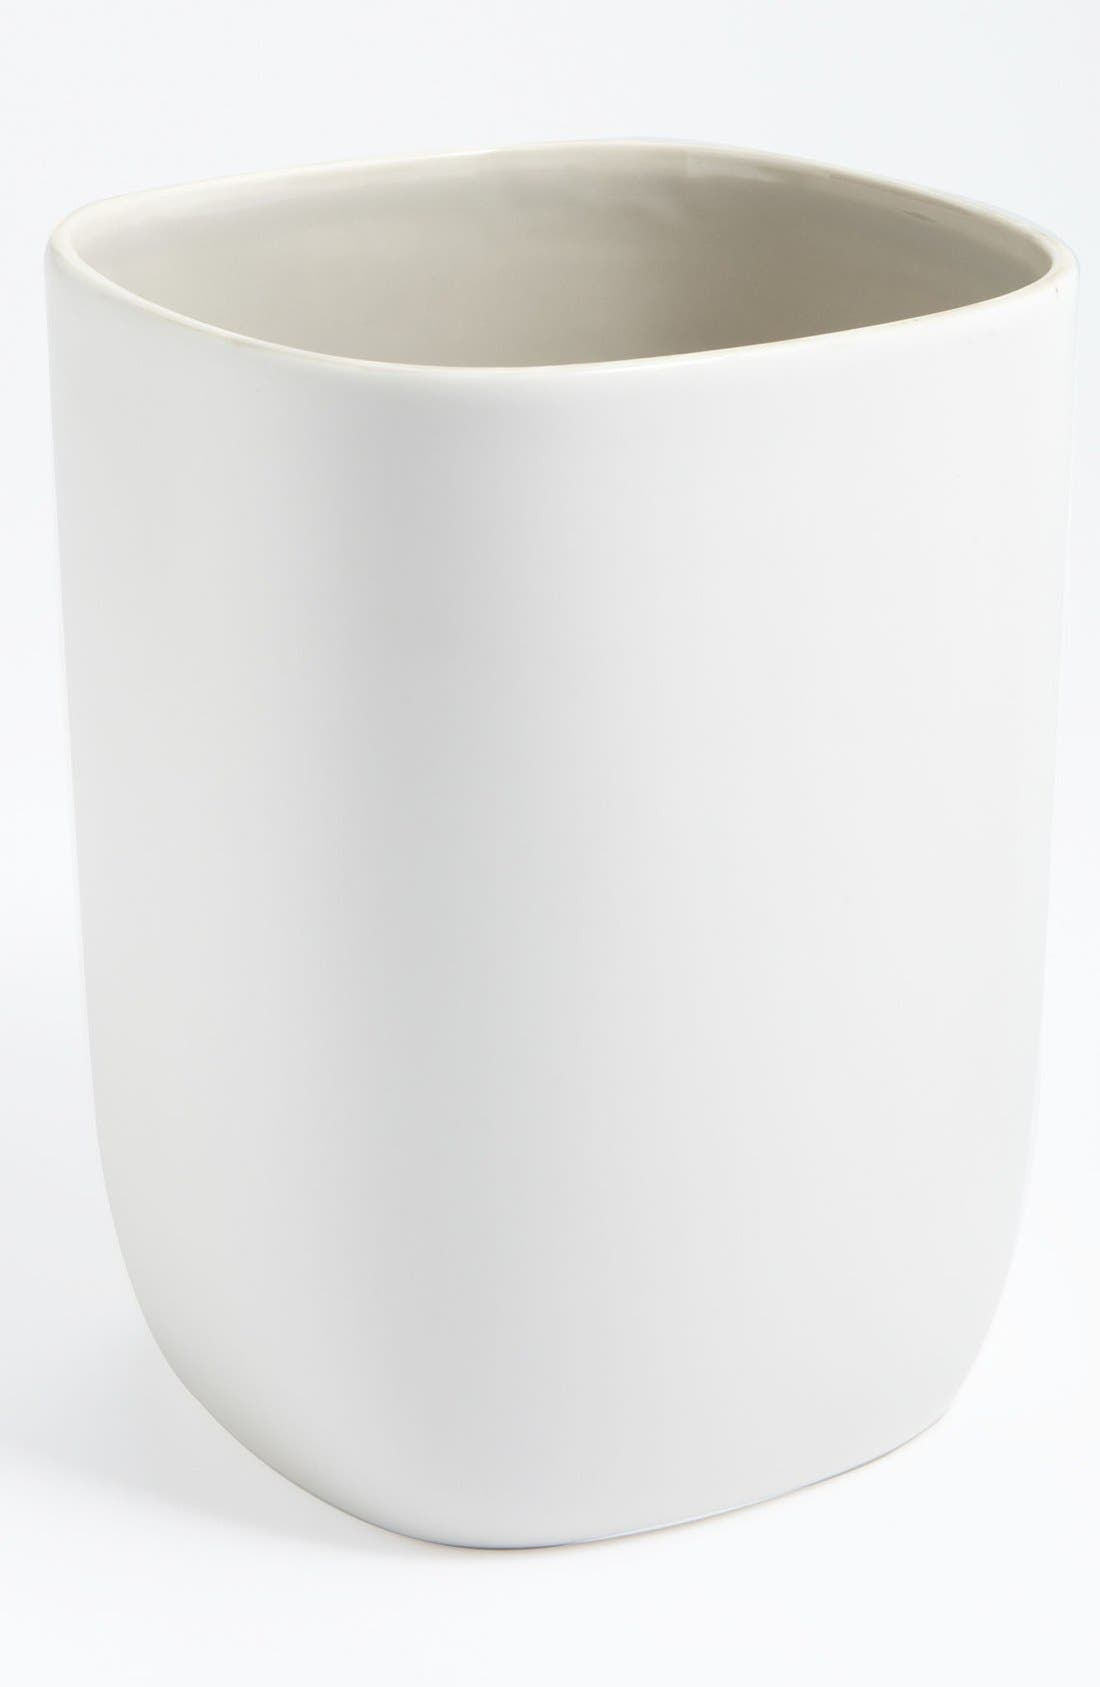 Alternate Image 1 Selected - Waterworks Studio 'Modern' Ceramic Wastebasket (Online Only)